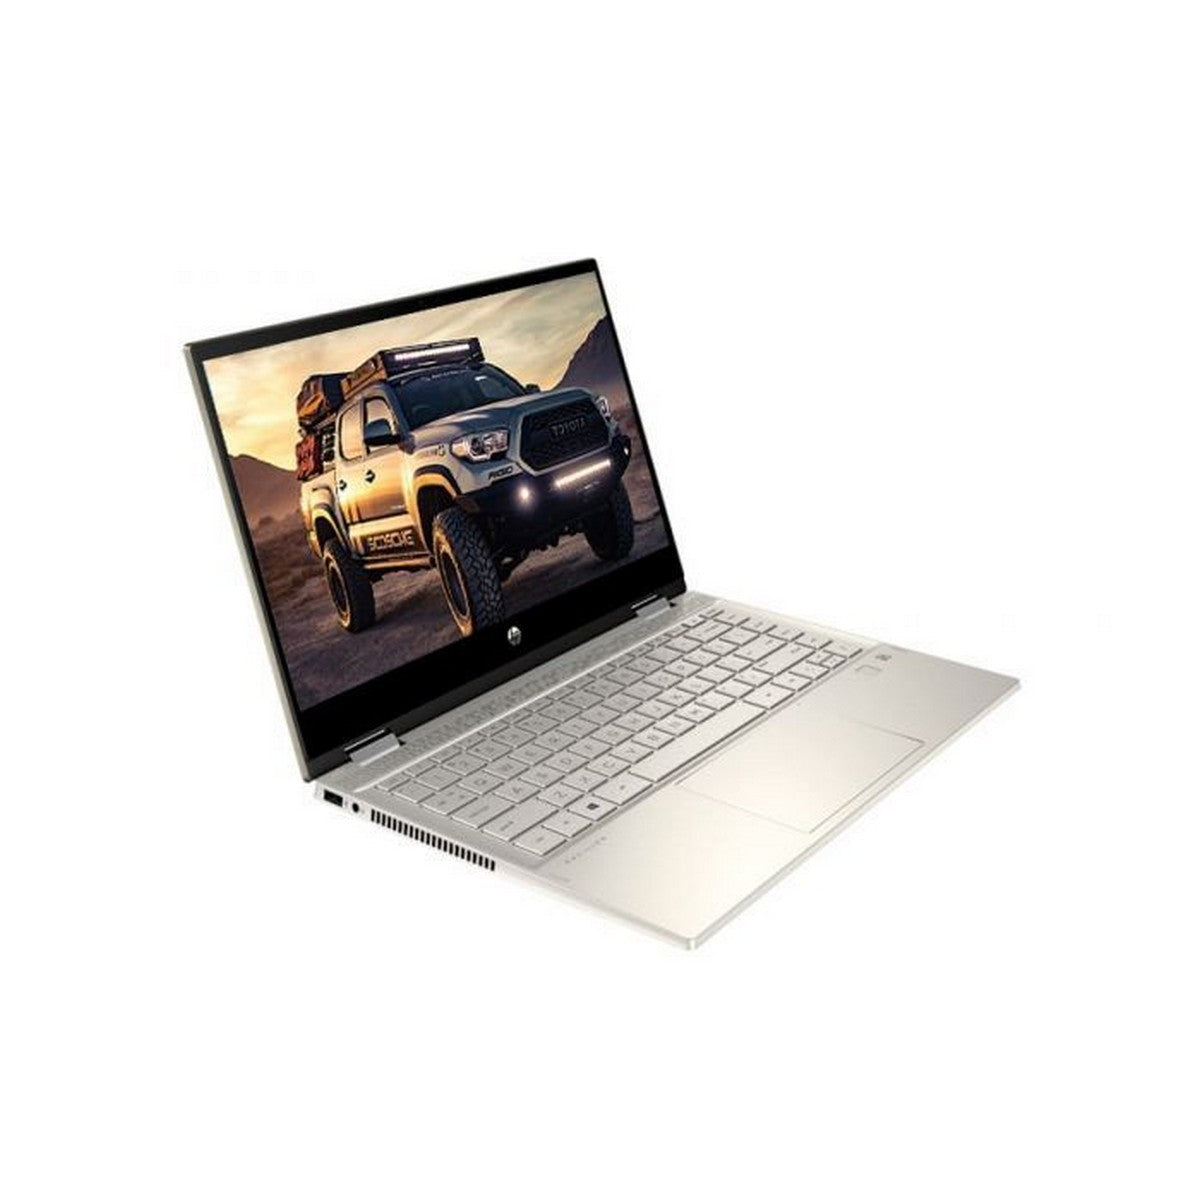 HP Pavilion X360 14m-dw0023dx 2 in 1 Laptop 14'' FHD IPS , Intel Core i5 i5-1035G1 1.0GHz to 3.6 GHz 6MB cache, 8GB RAM, Intel UHD GPU, 256GB SSD, Touchscreen, Windows 10, English Keyboard